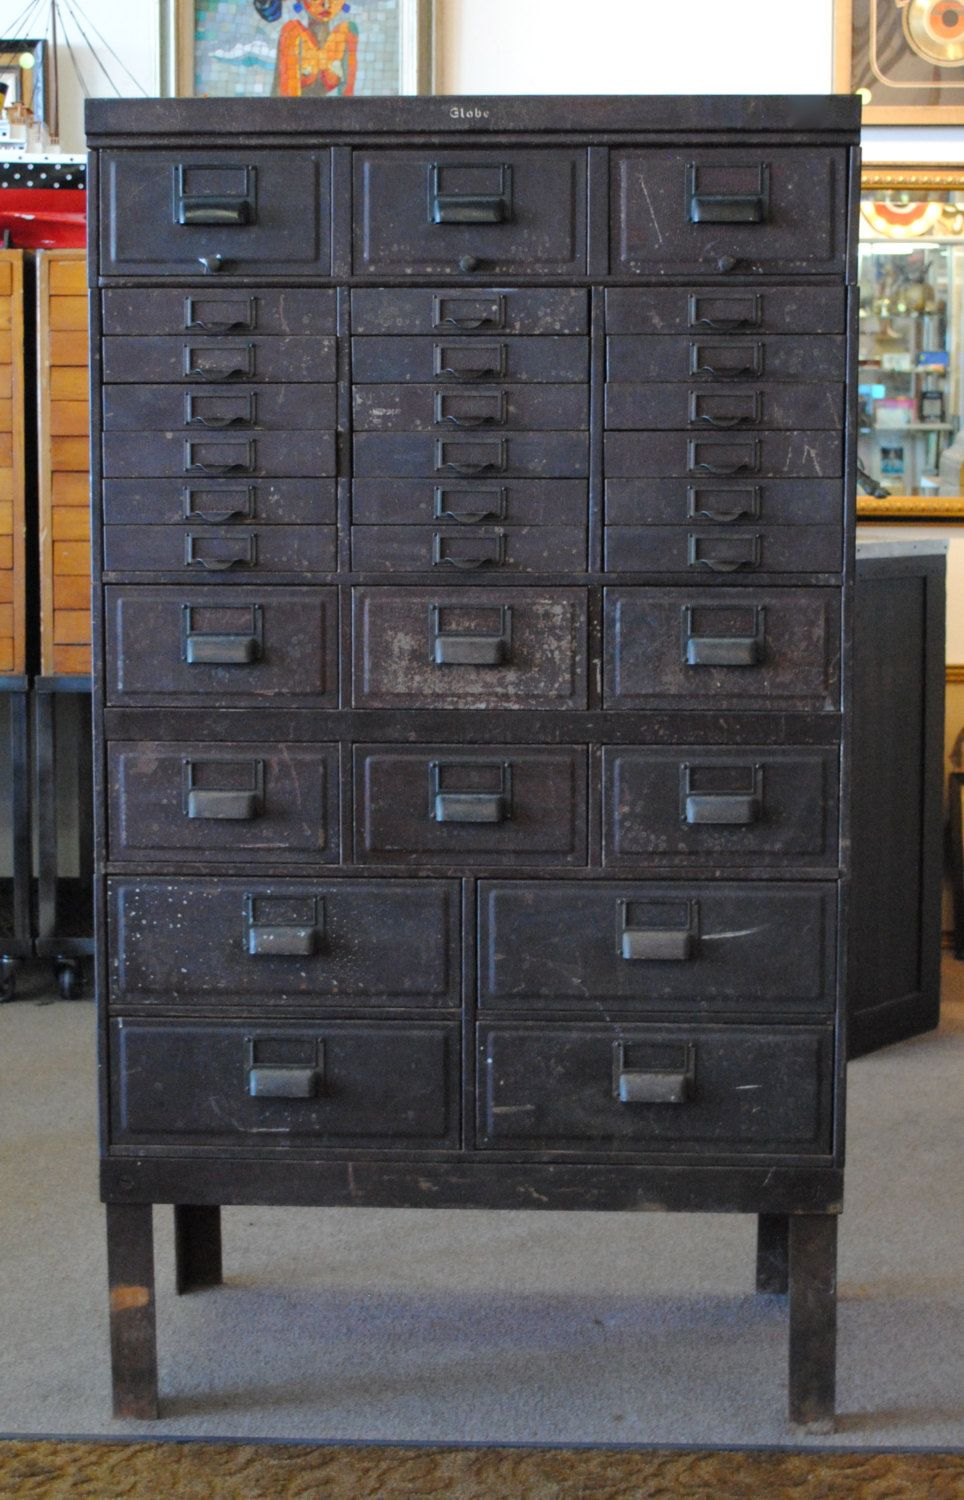 Metal Vintage Industrial Filing Drawers Retro Cool Rustic Shelving Upcycled